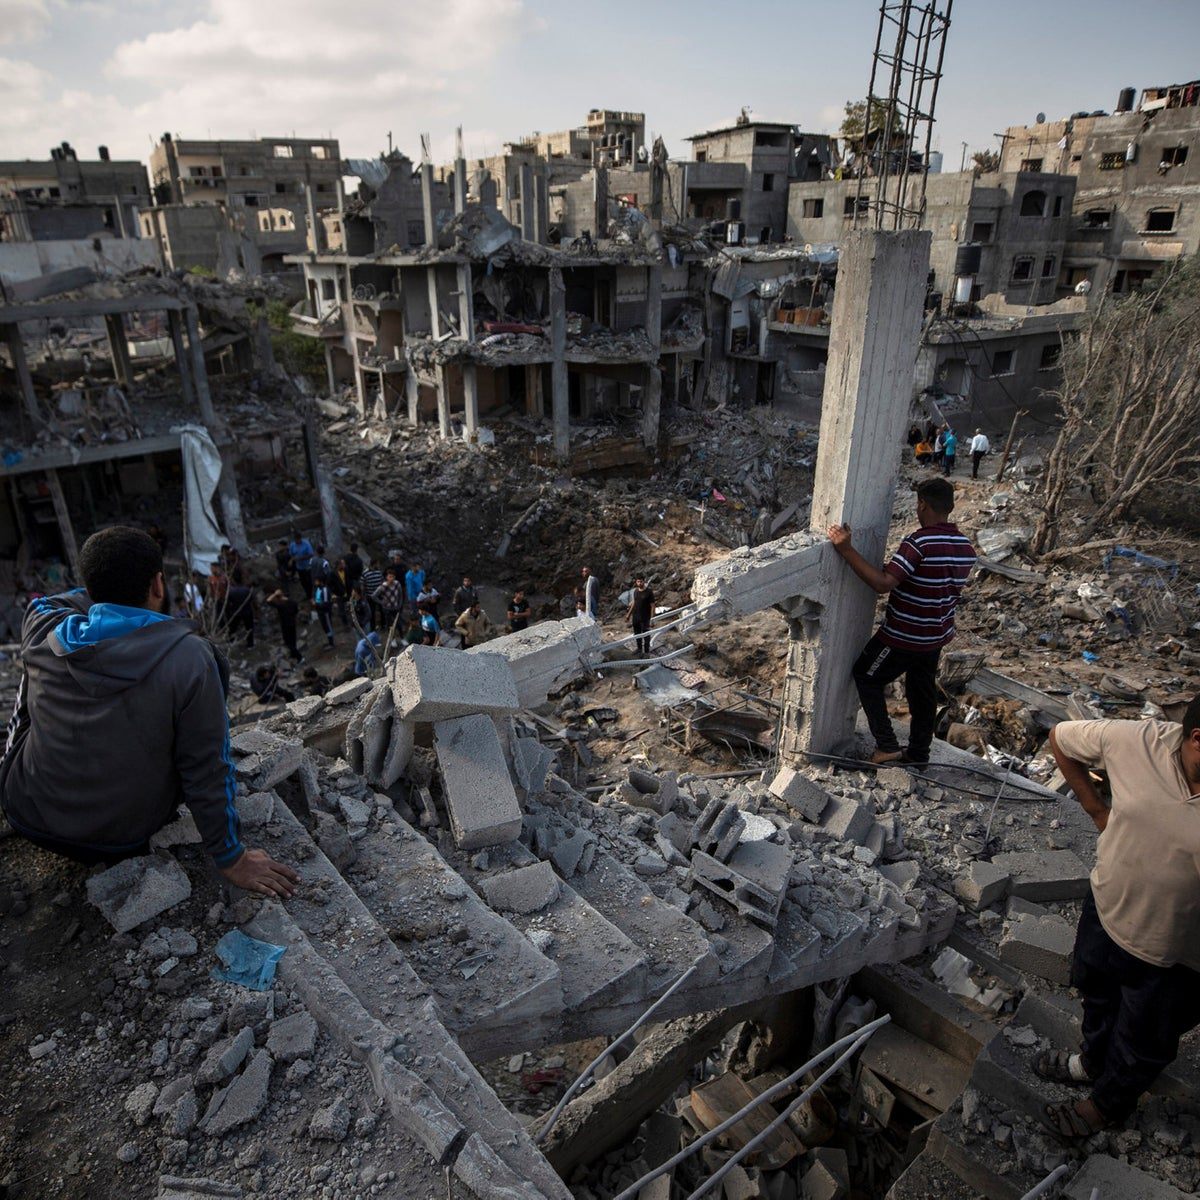 Palestinians inspect their destroyed houses following overnight Israeli airstrikes in town of Beit Hanoun, northern Gaza Strip.